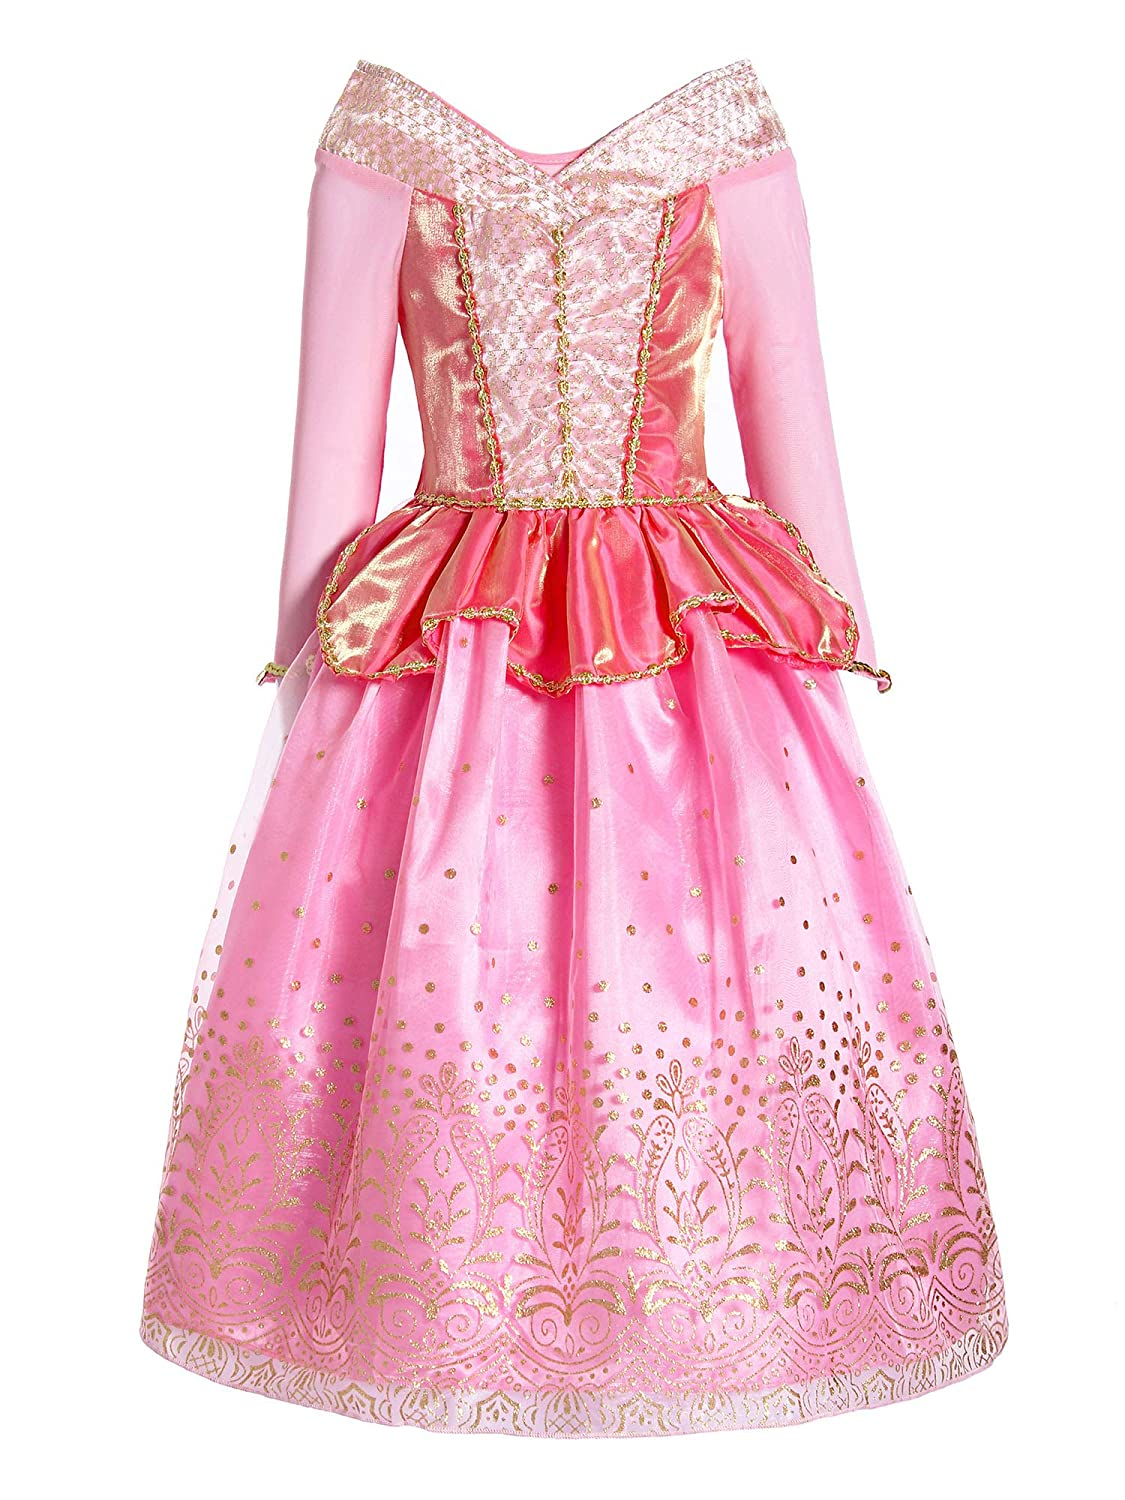 ReliBeauty Girls Princess Dress up Aurora Costume RB-G9198